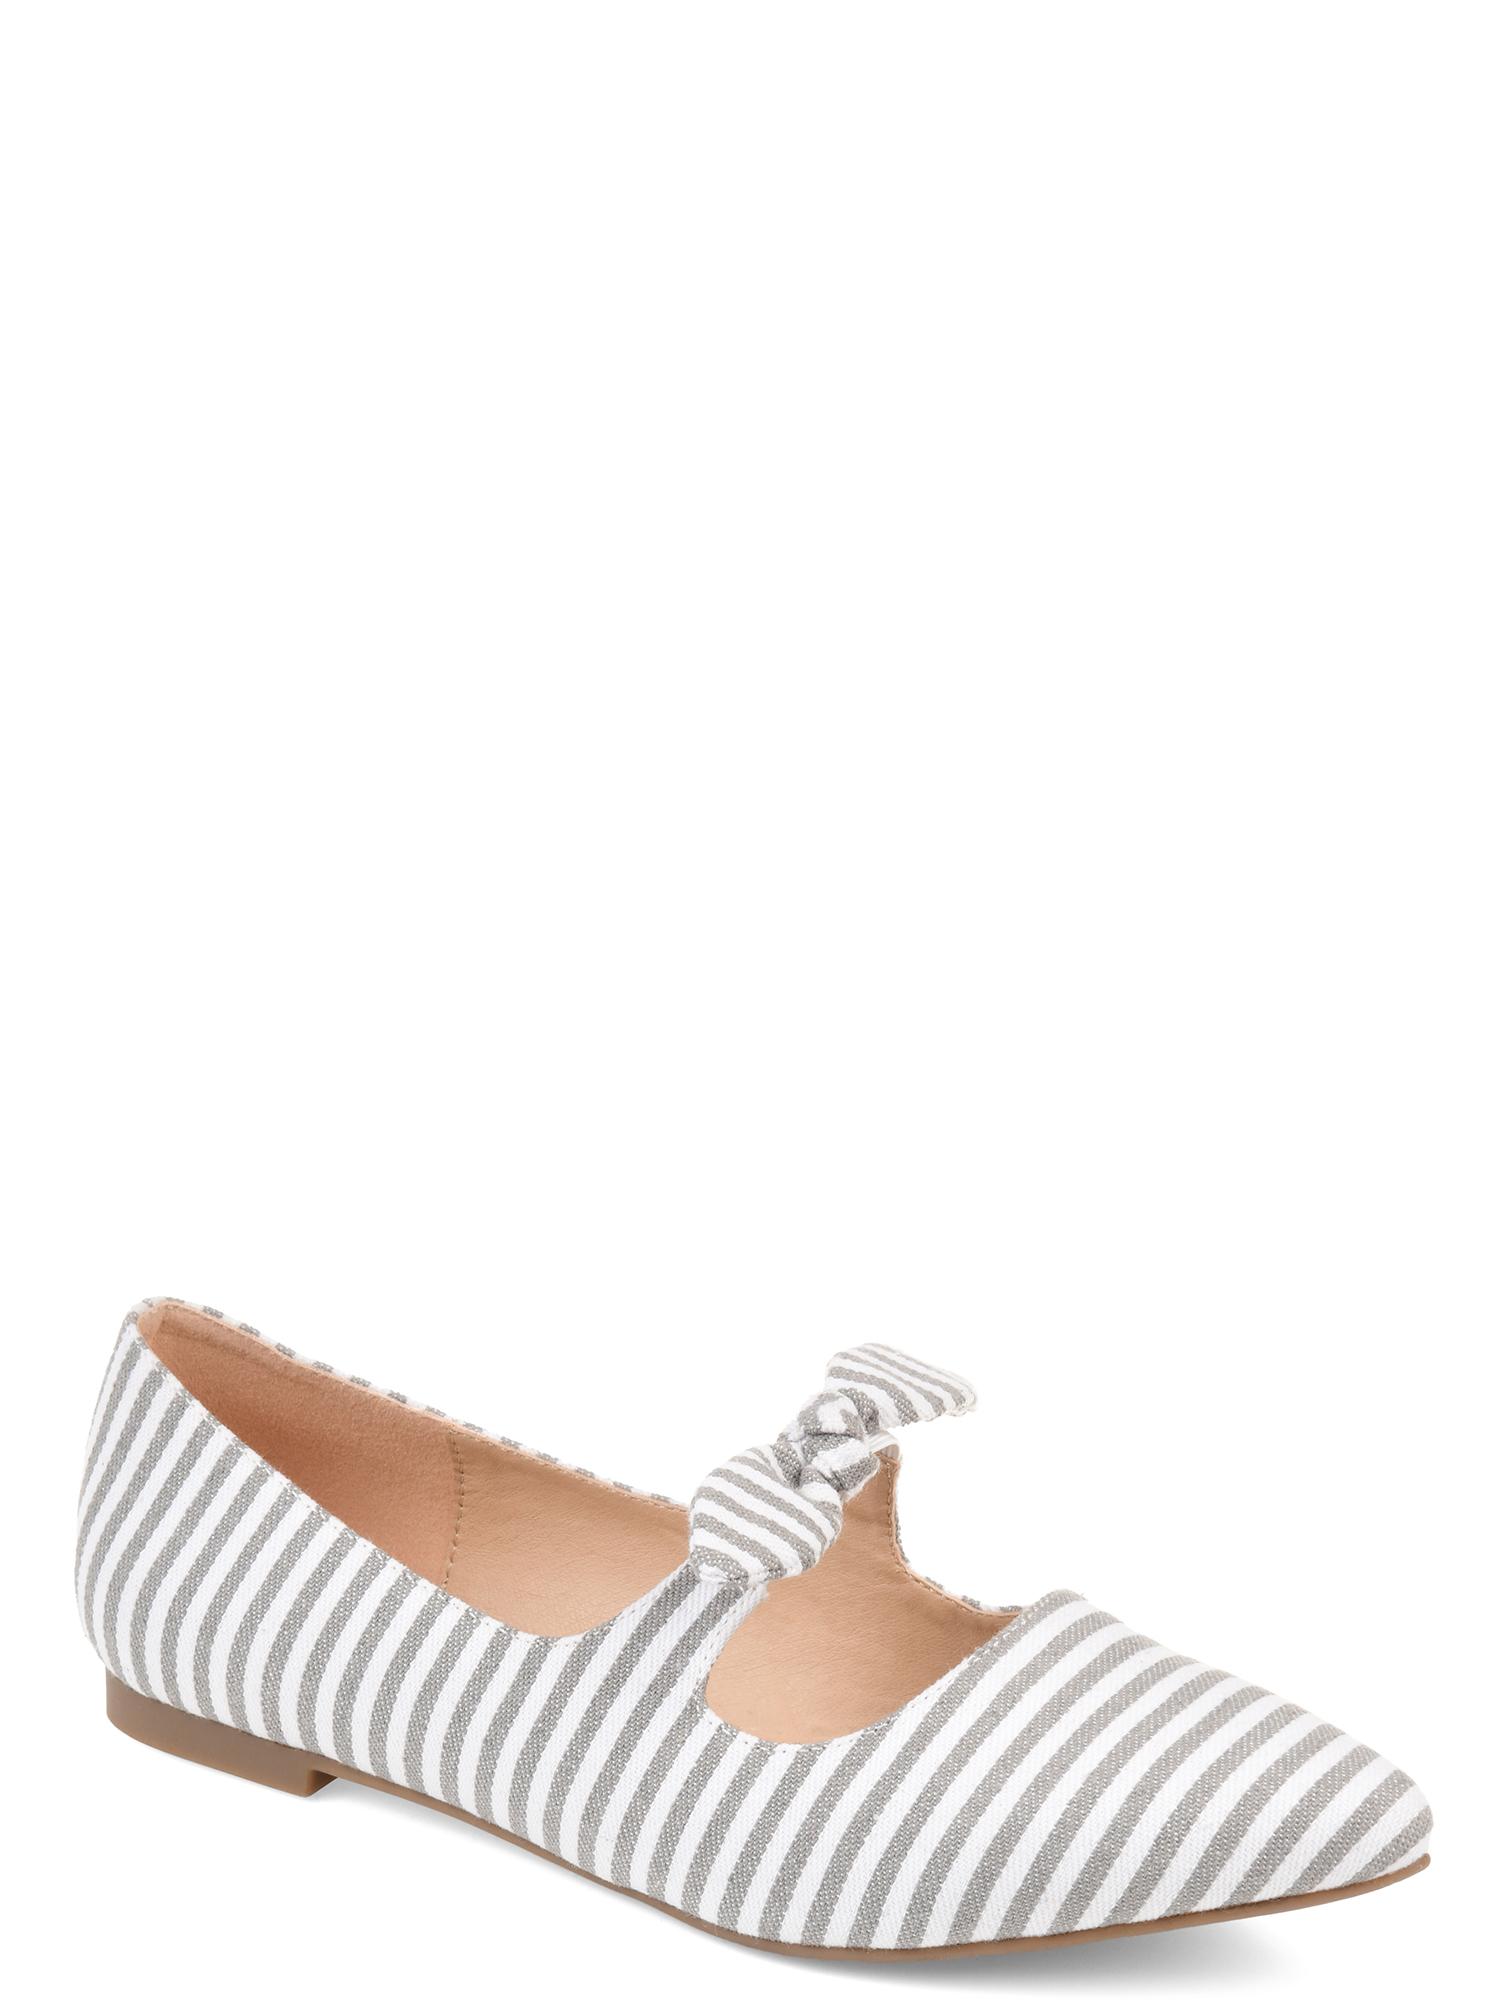 Womens Bow Accent Almond Toe Flats